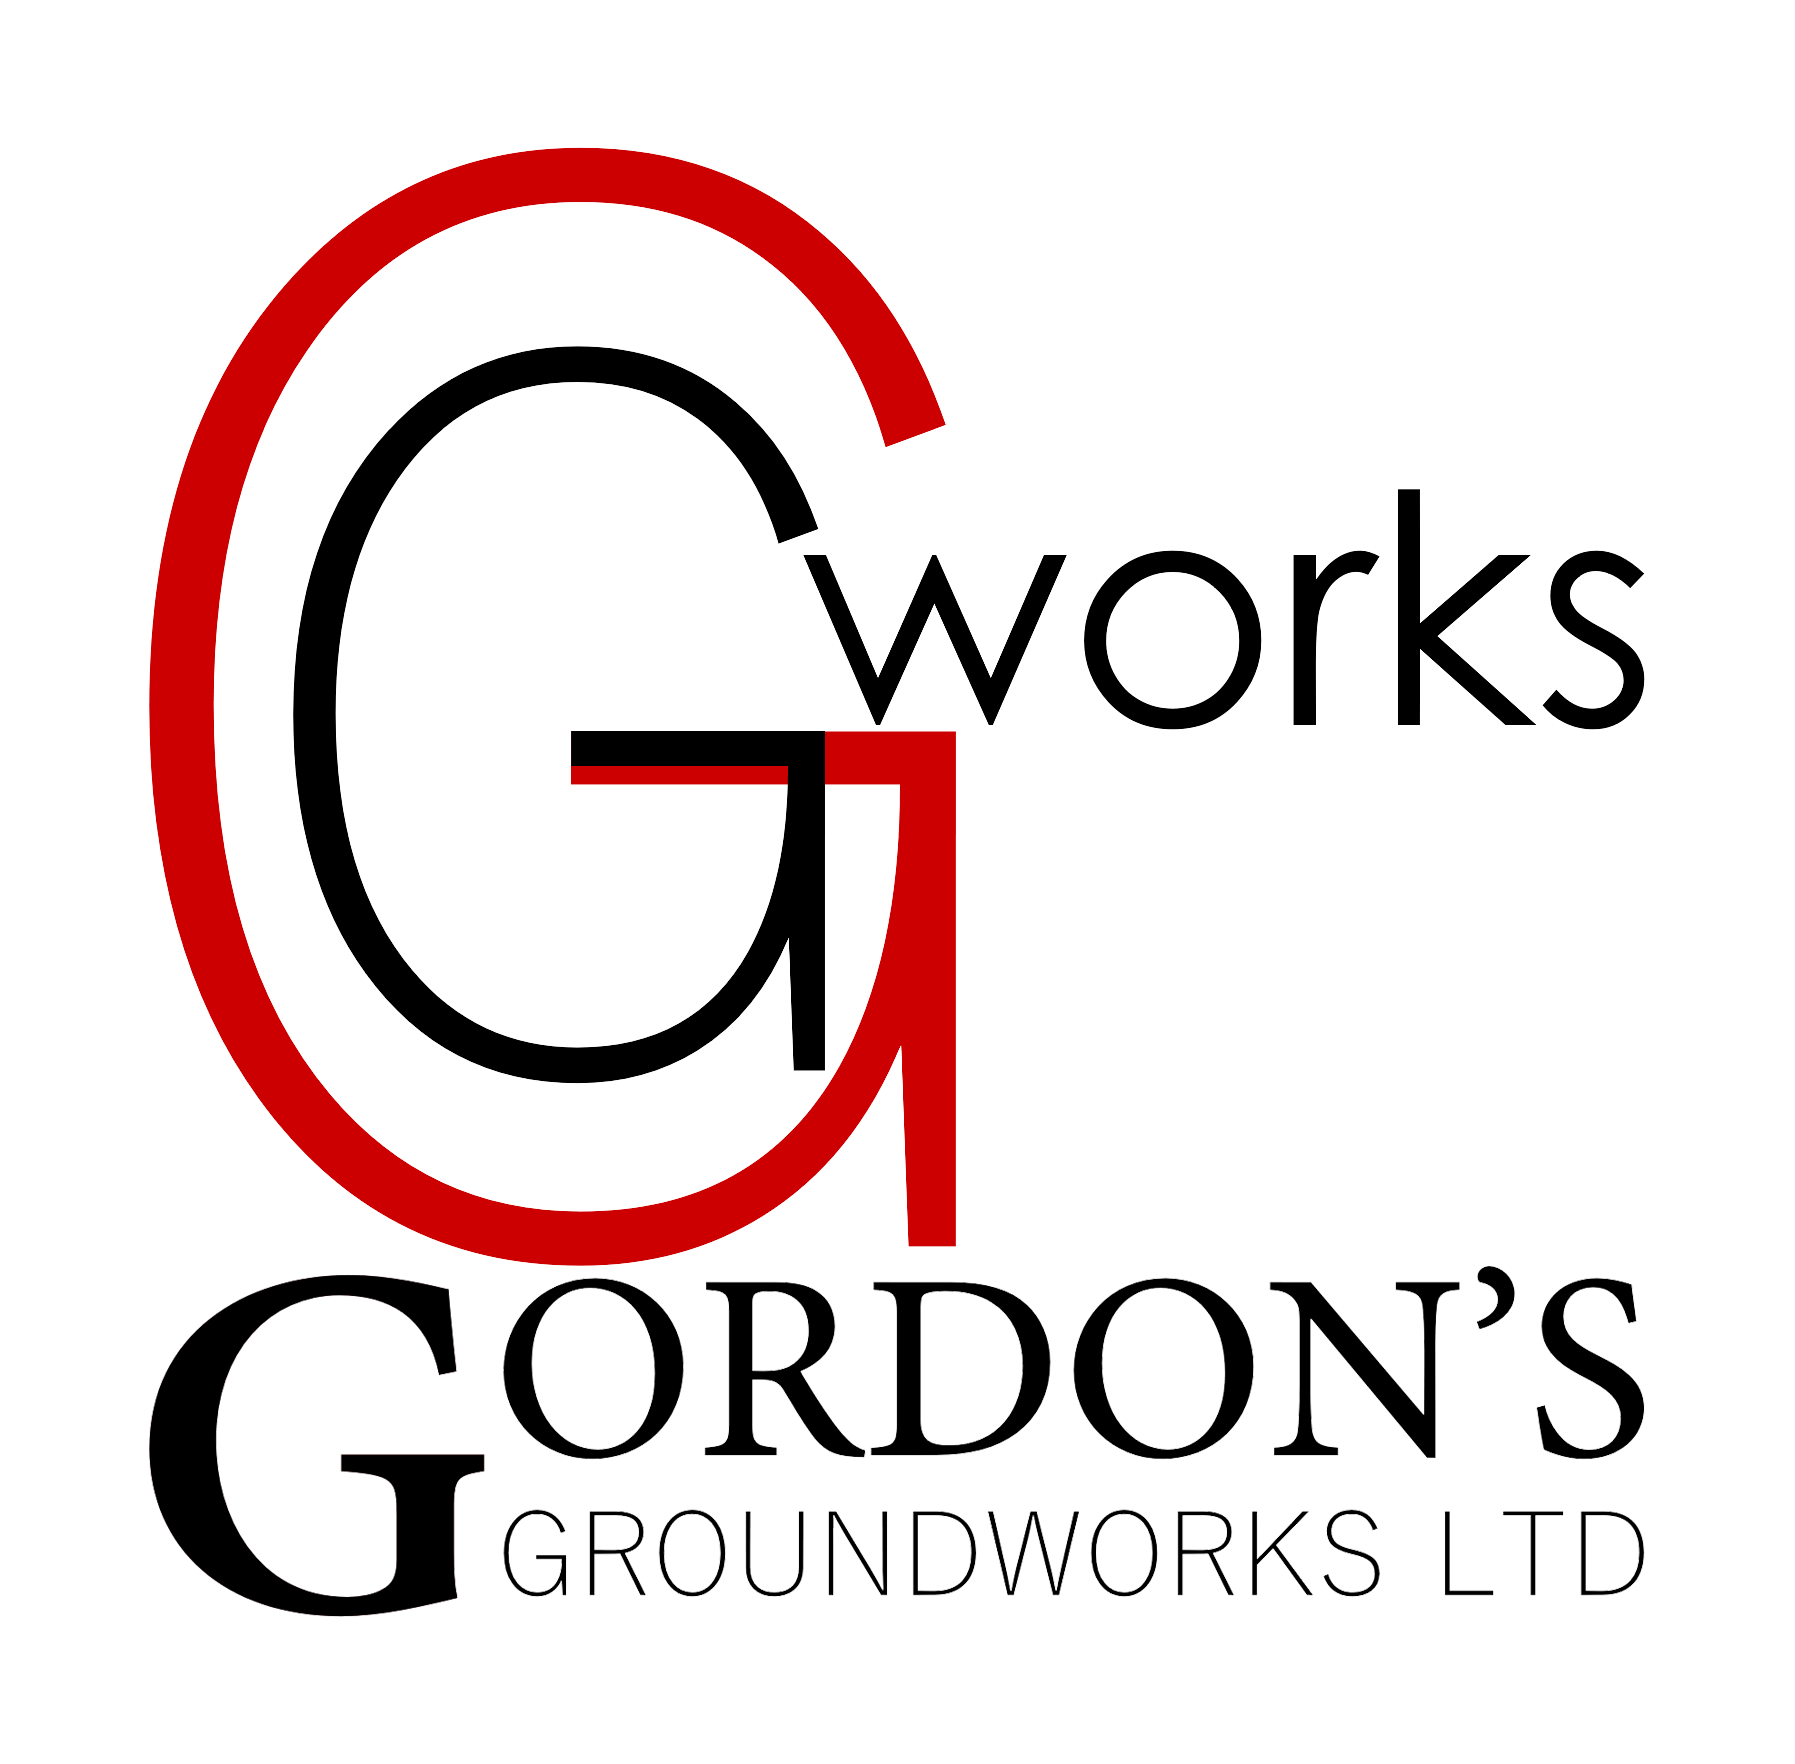 Gordons Groundworks